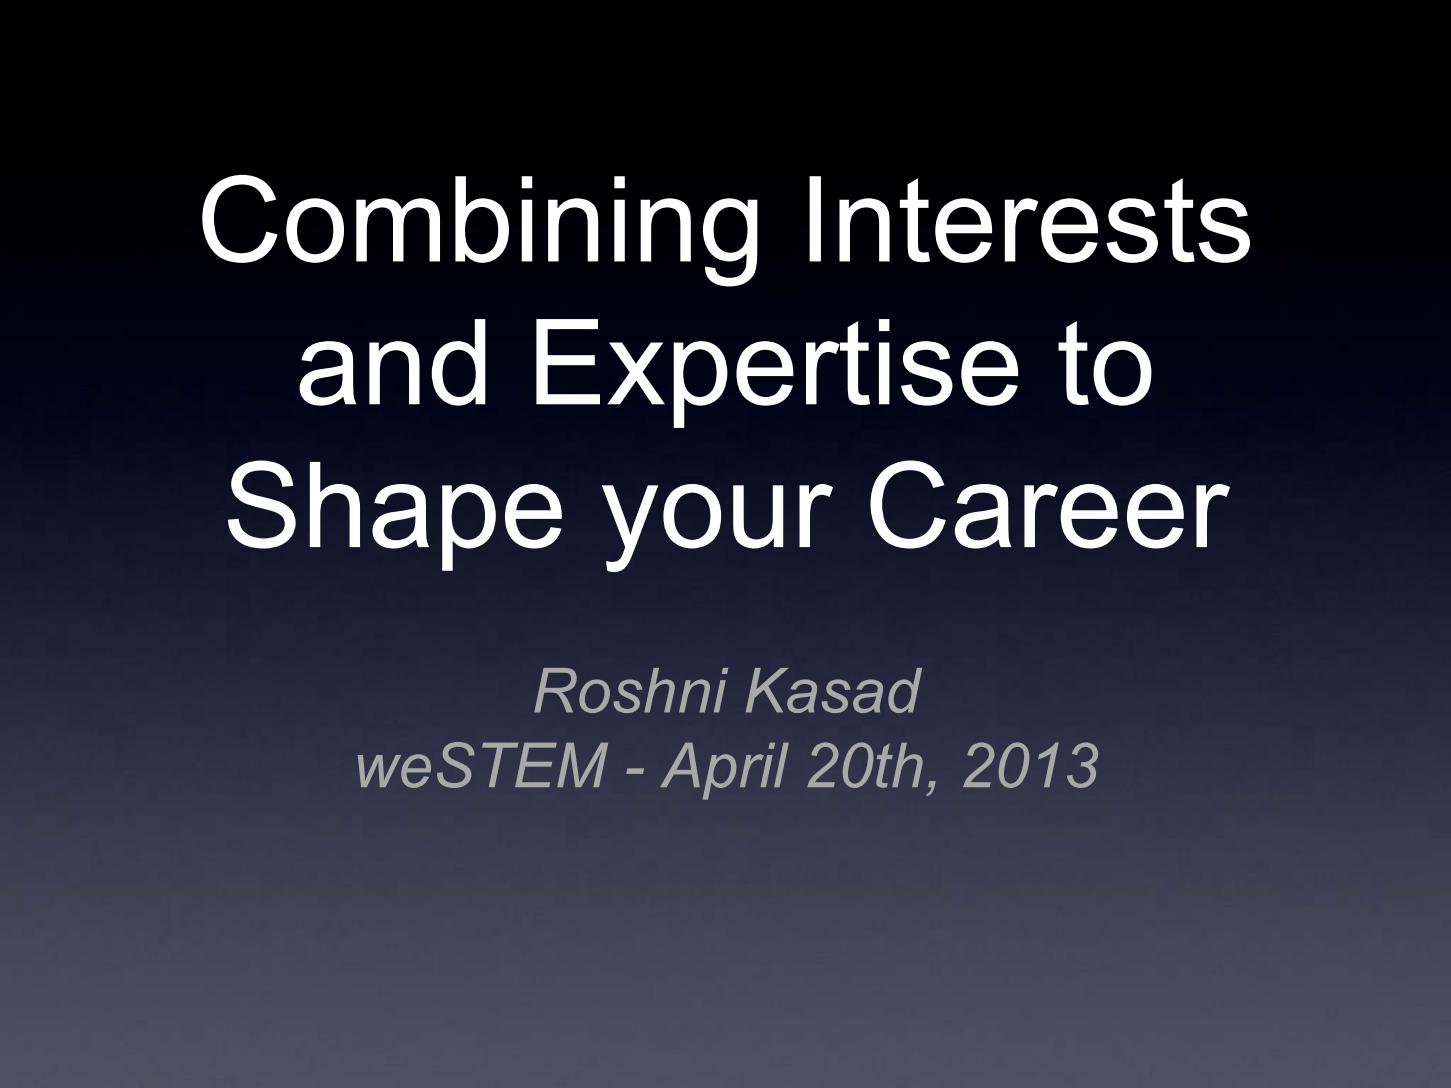 Combining Interests and Expertise to Shape your Career